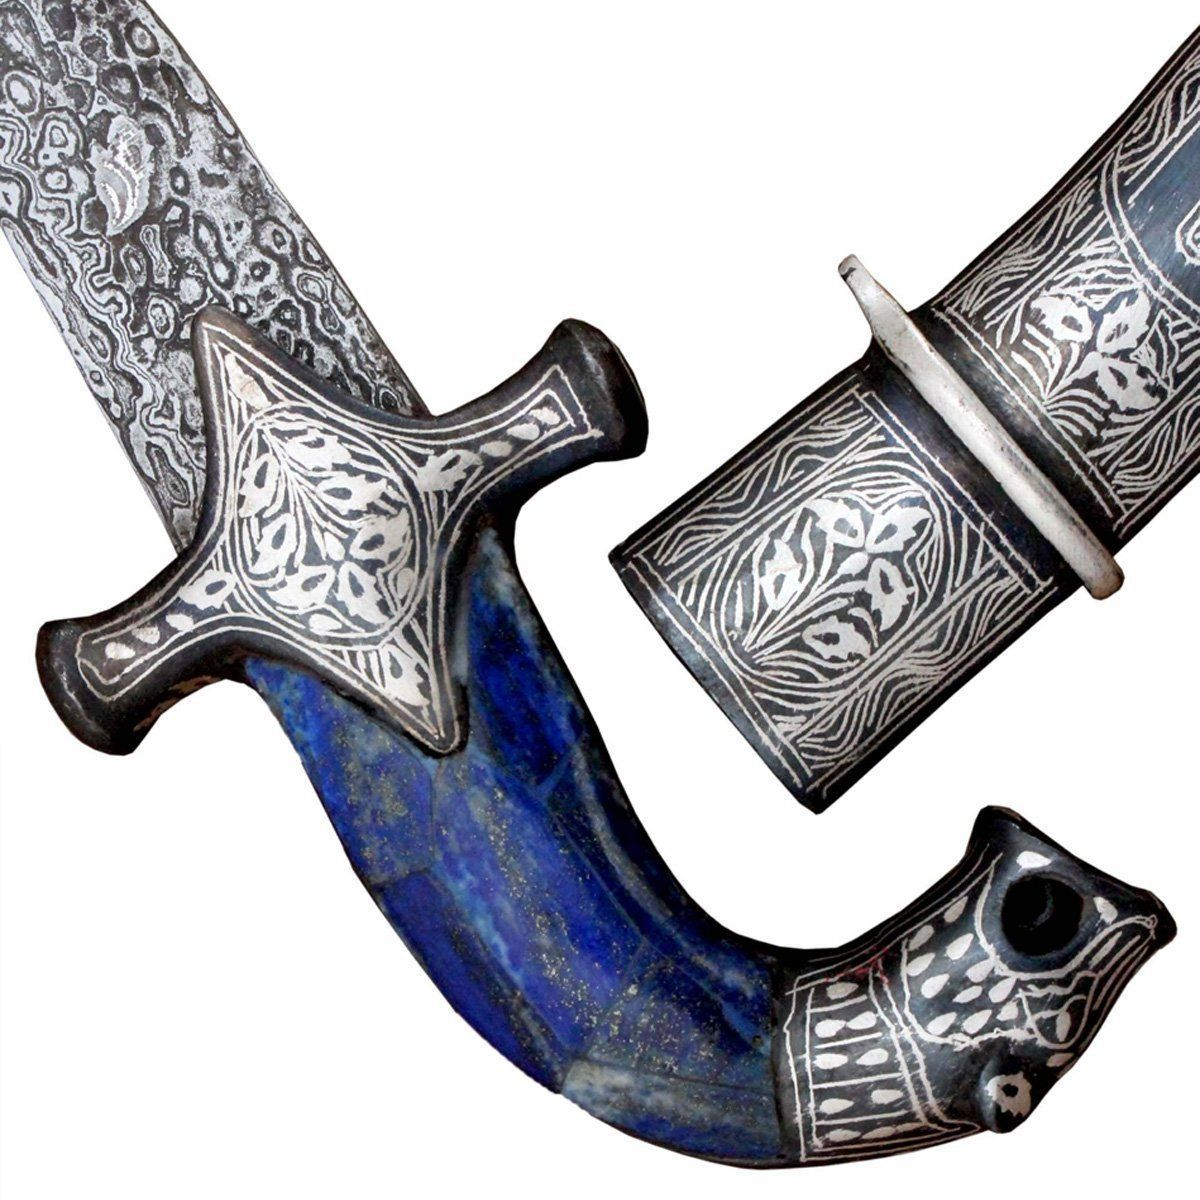 Dagger - Royal Persian Blue Knight Sword Handmade Steel Blade Assorted Original Silver Inlay Art Work Ancient Medieval Times - 12 Inches